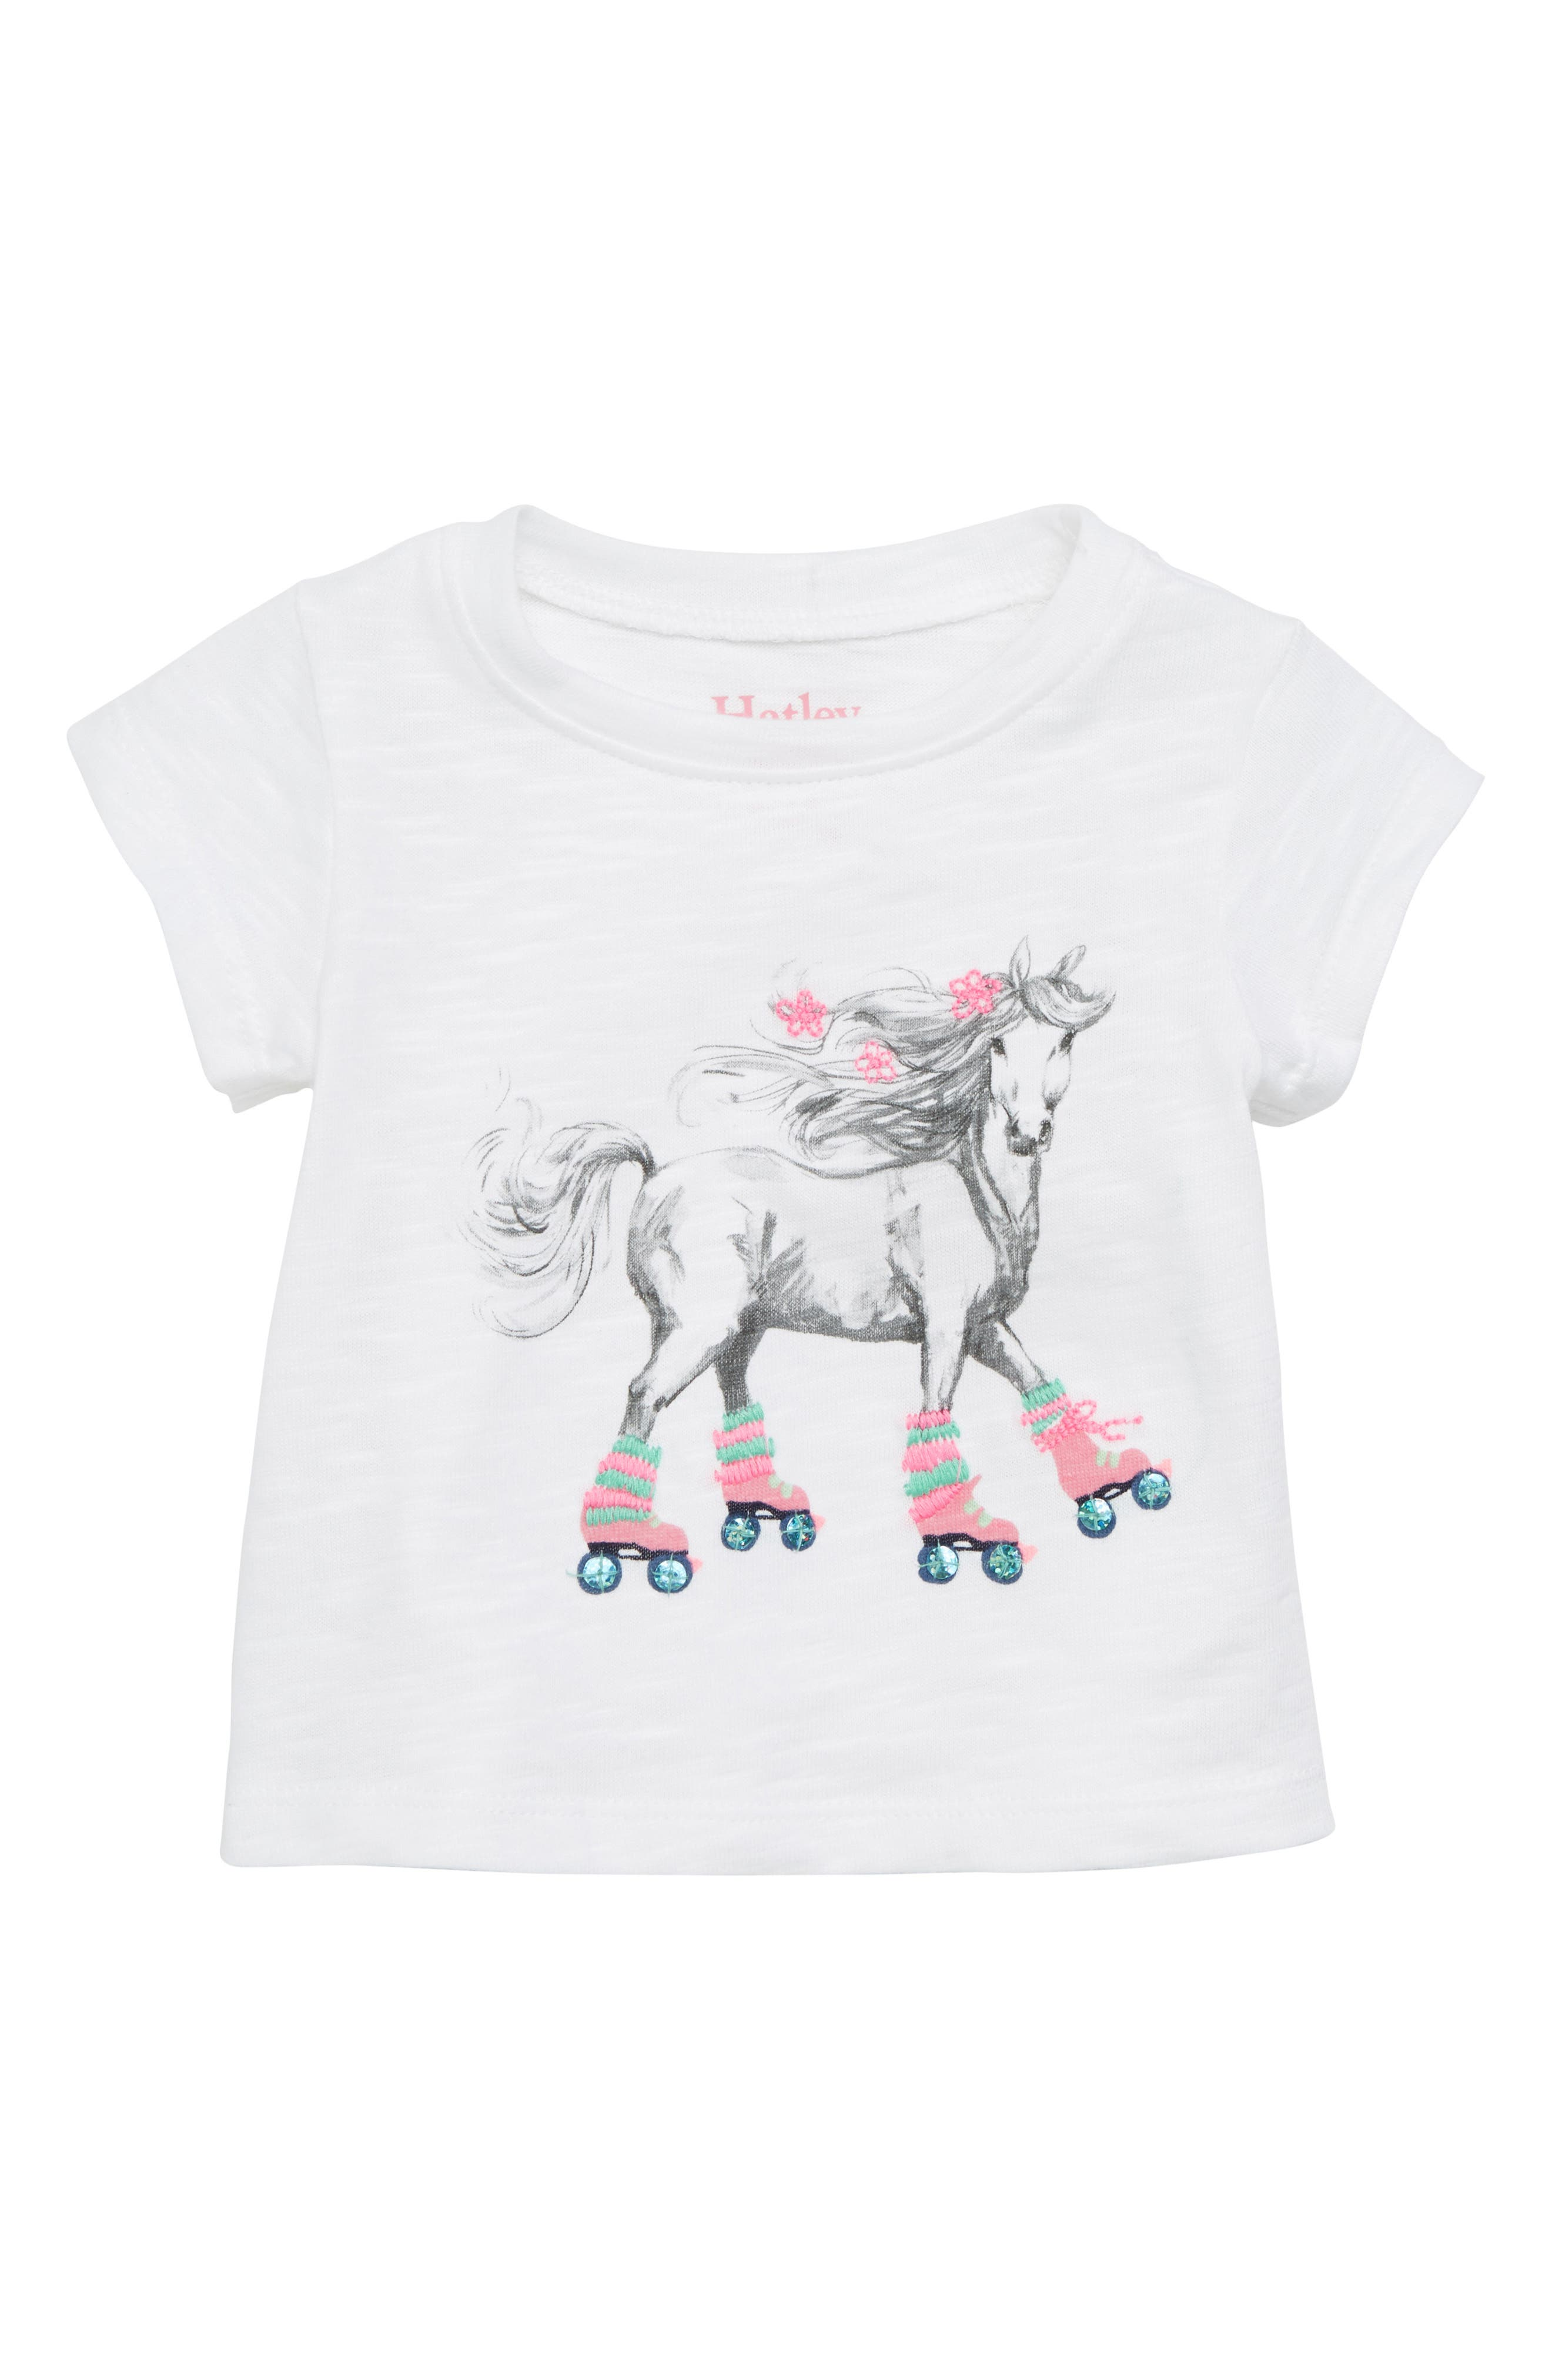 Alternate Image 1 Selected - Hatley Roller Skating Horse Graphic Tee (Baby Girls)